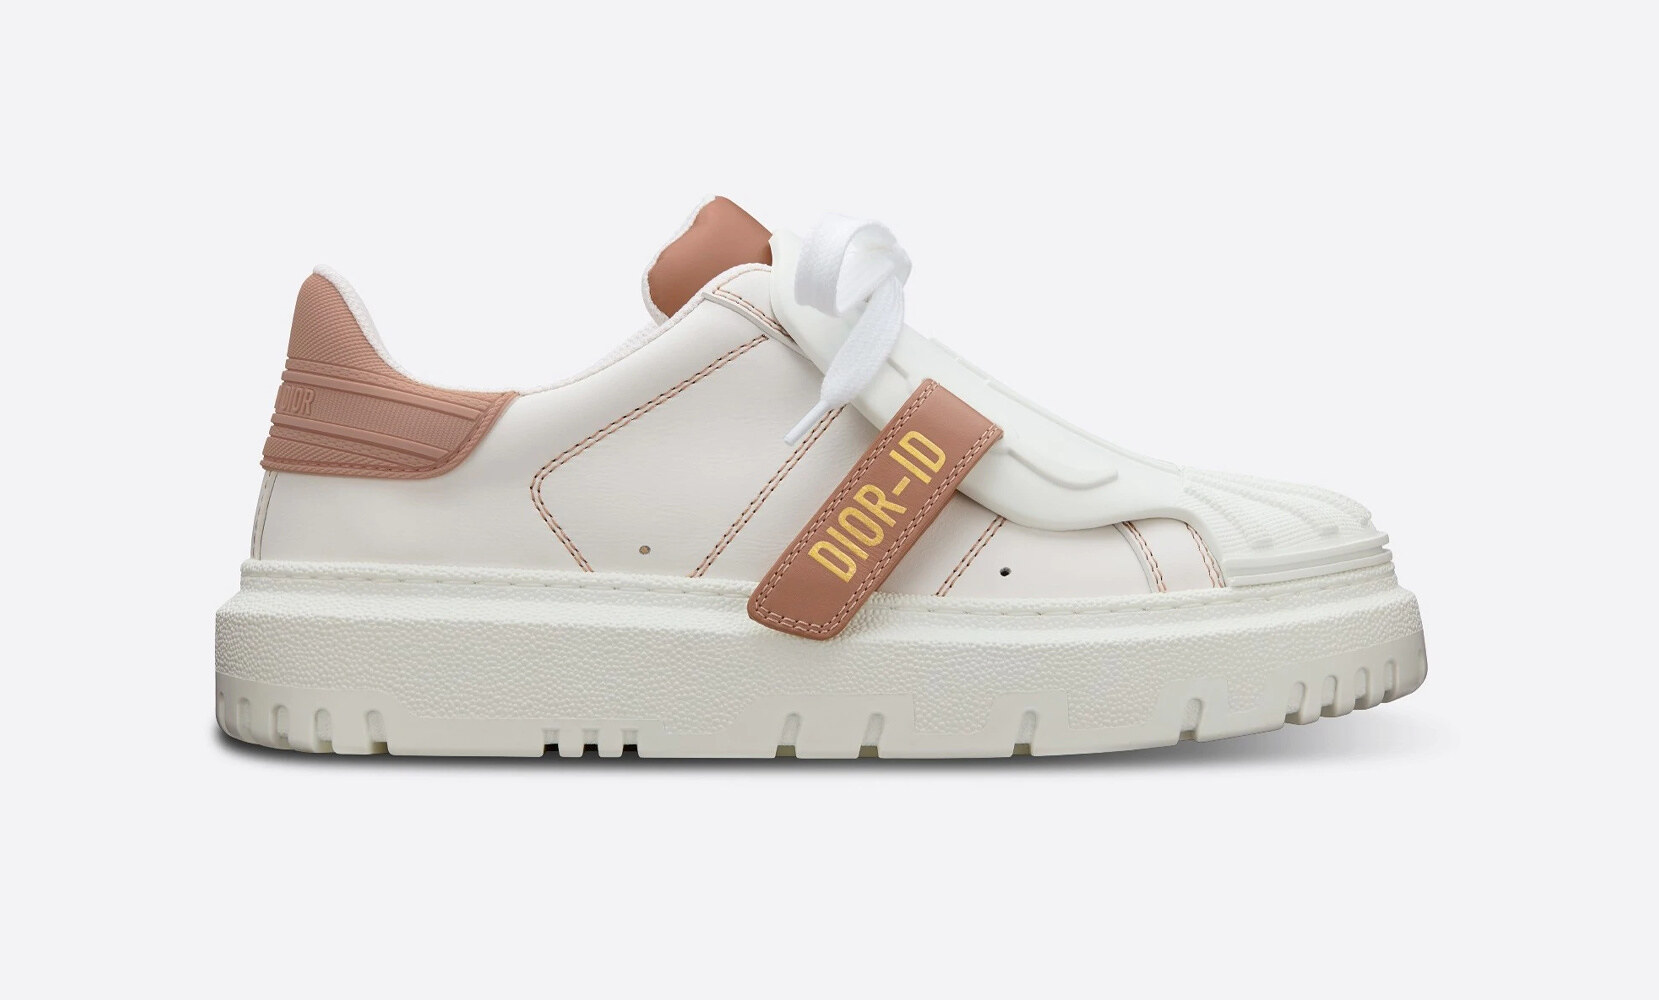 Dior-ID sneakers